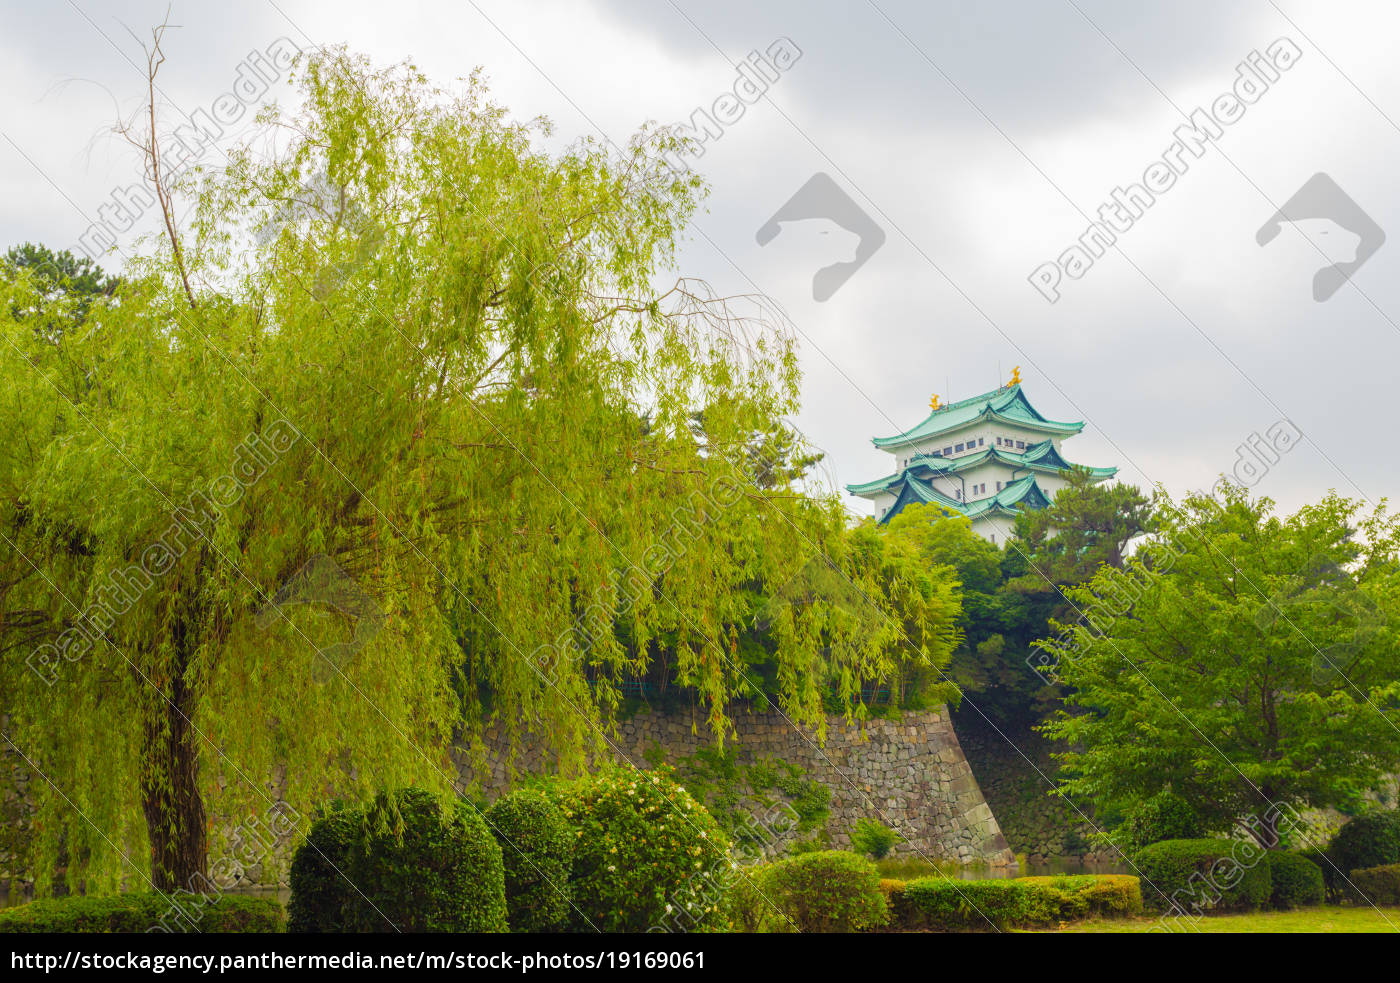 nagoya, castle, high, above, rampart, trees - 19169061